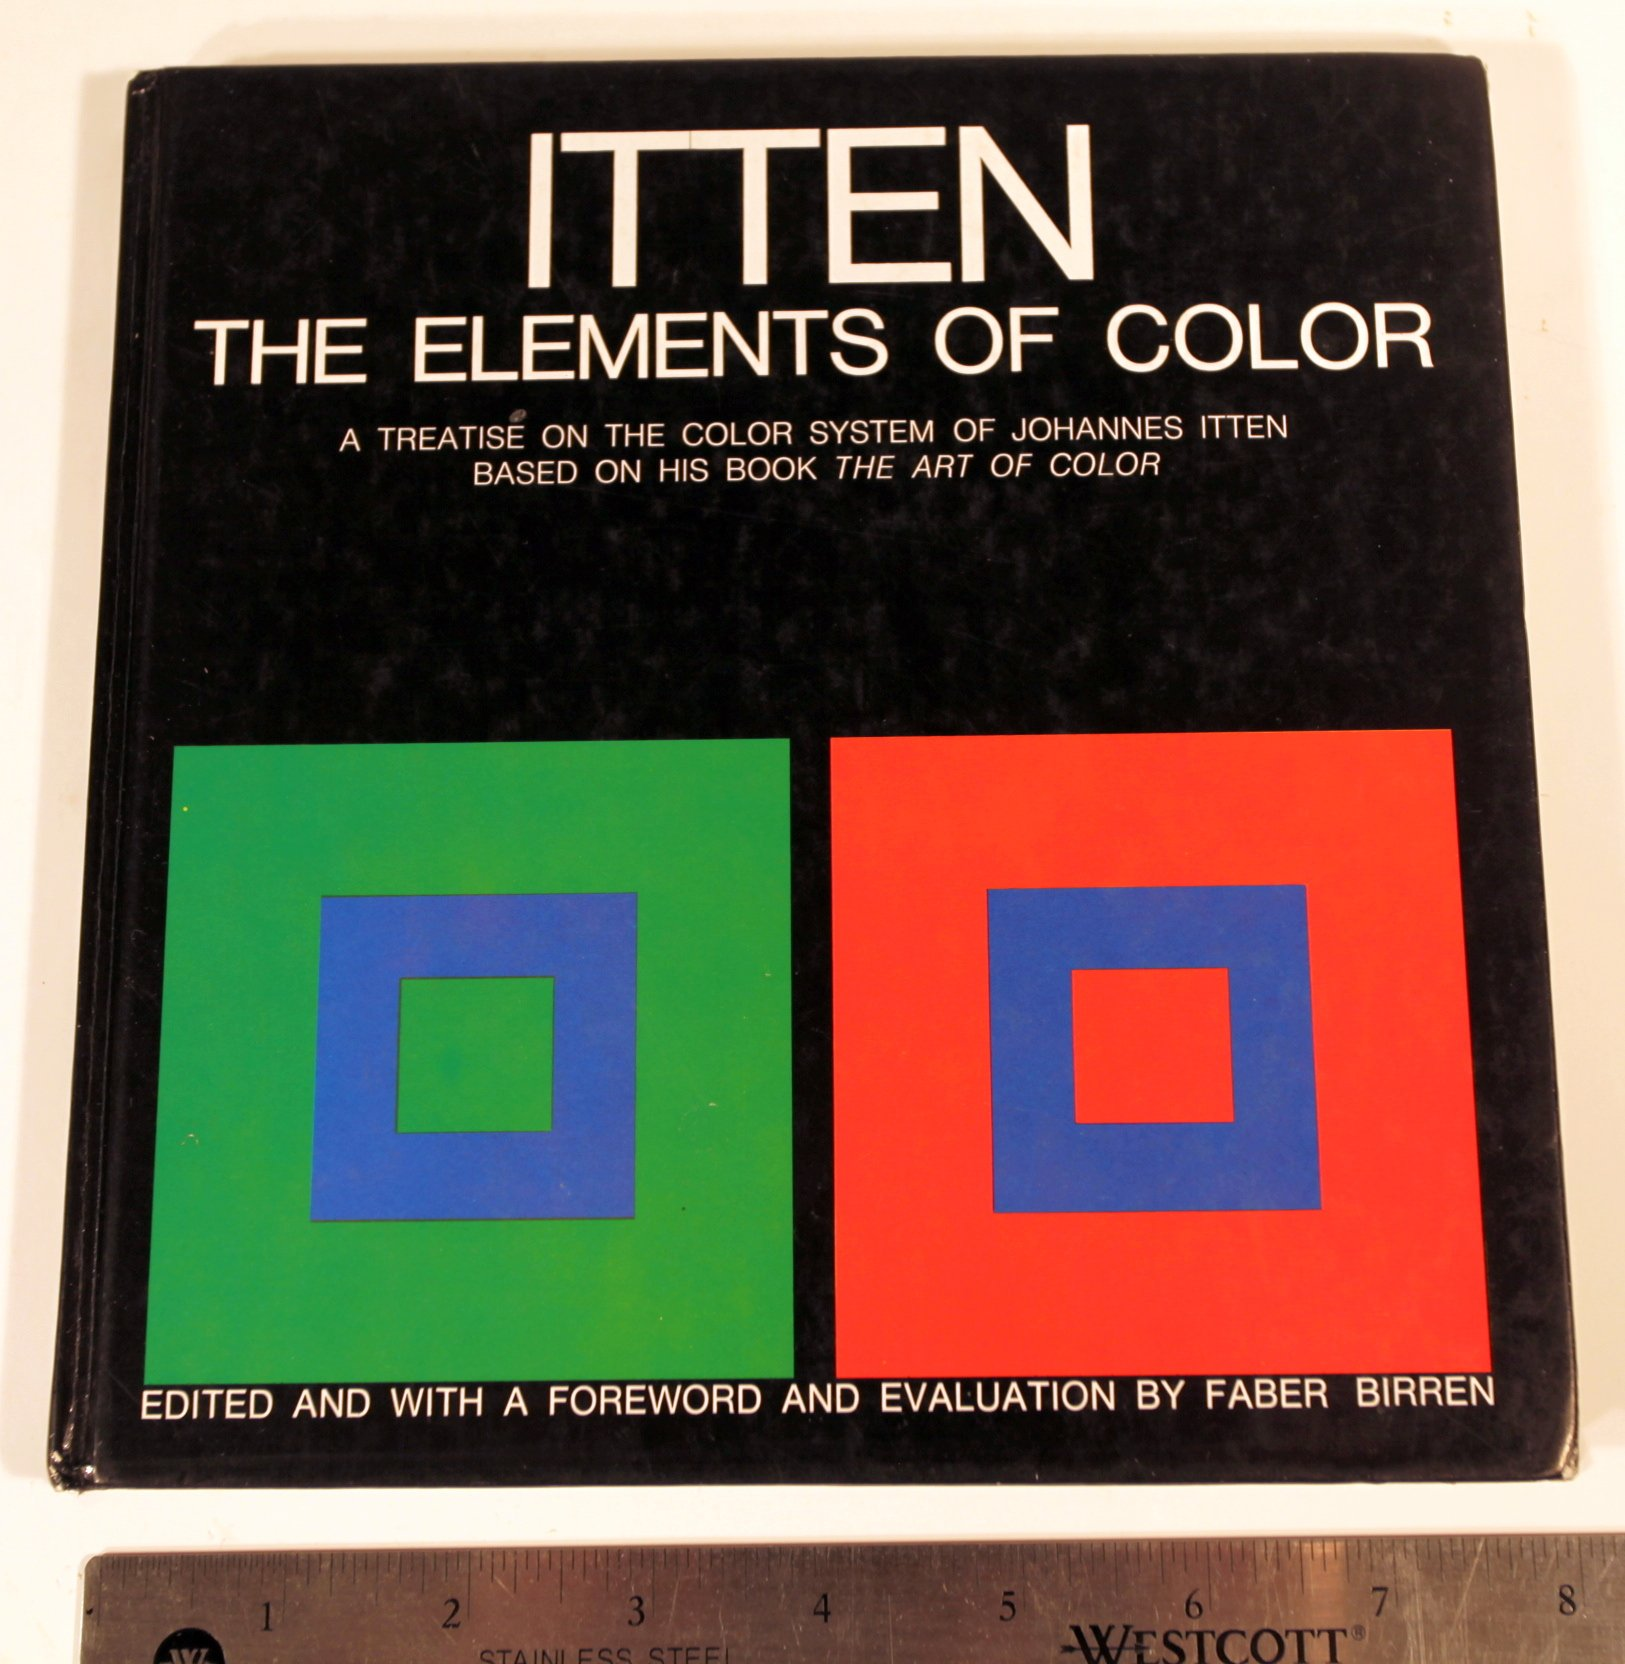 The Elements of Color: Amazon.co.uk: Johannes Itten, Faber Birren ...